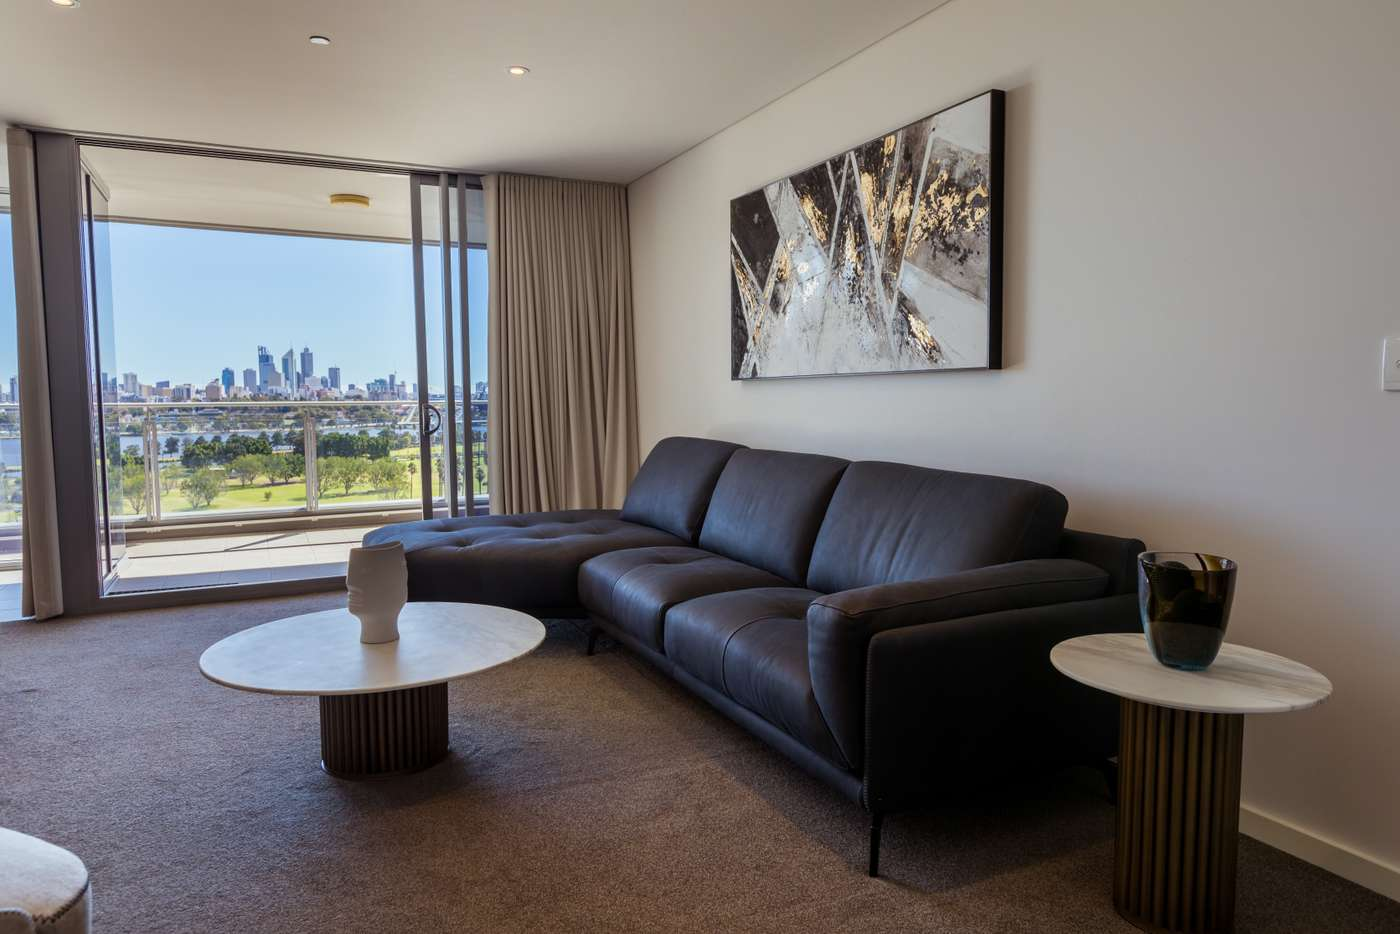 Sixth view of Homely apartment listing, 901/19 The Circus, Burswood WA 6100